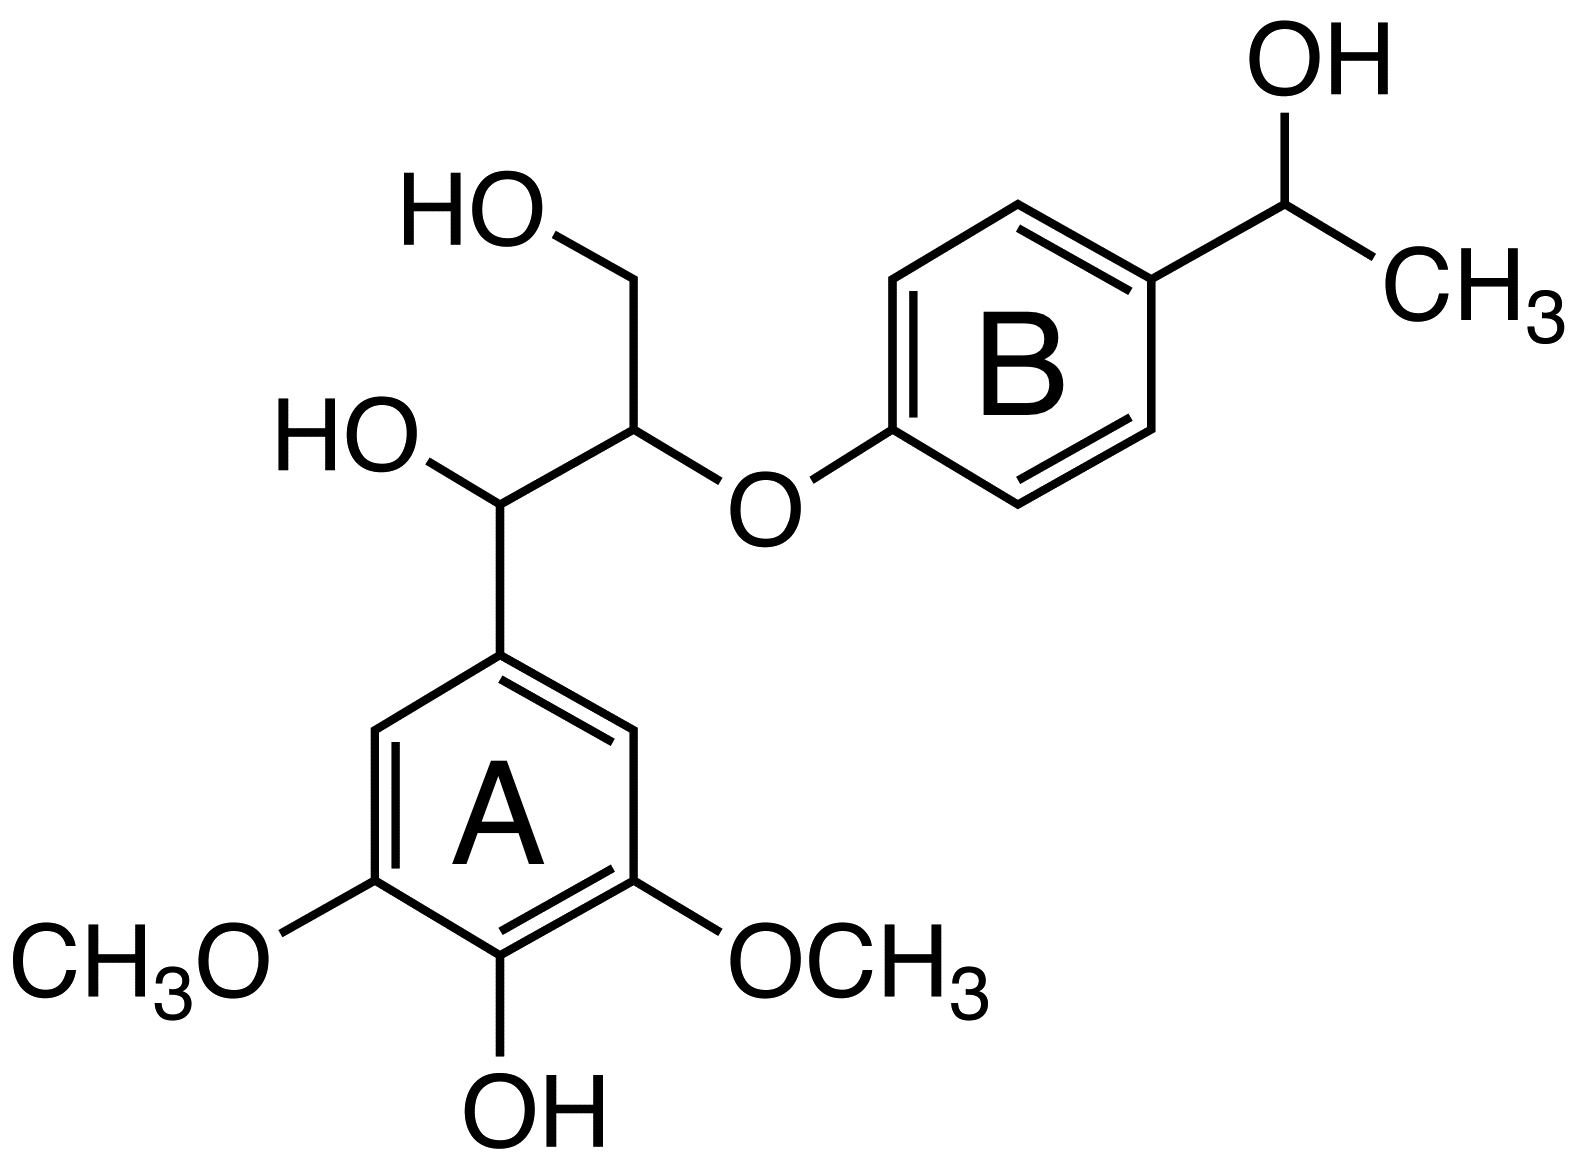 1-(4-Hydroxy-3,5-dimethoxyphenyl)-2-[4-(1-hydroxyethyl)phenoxy]propane-1,3-diol  image